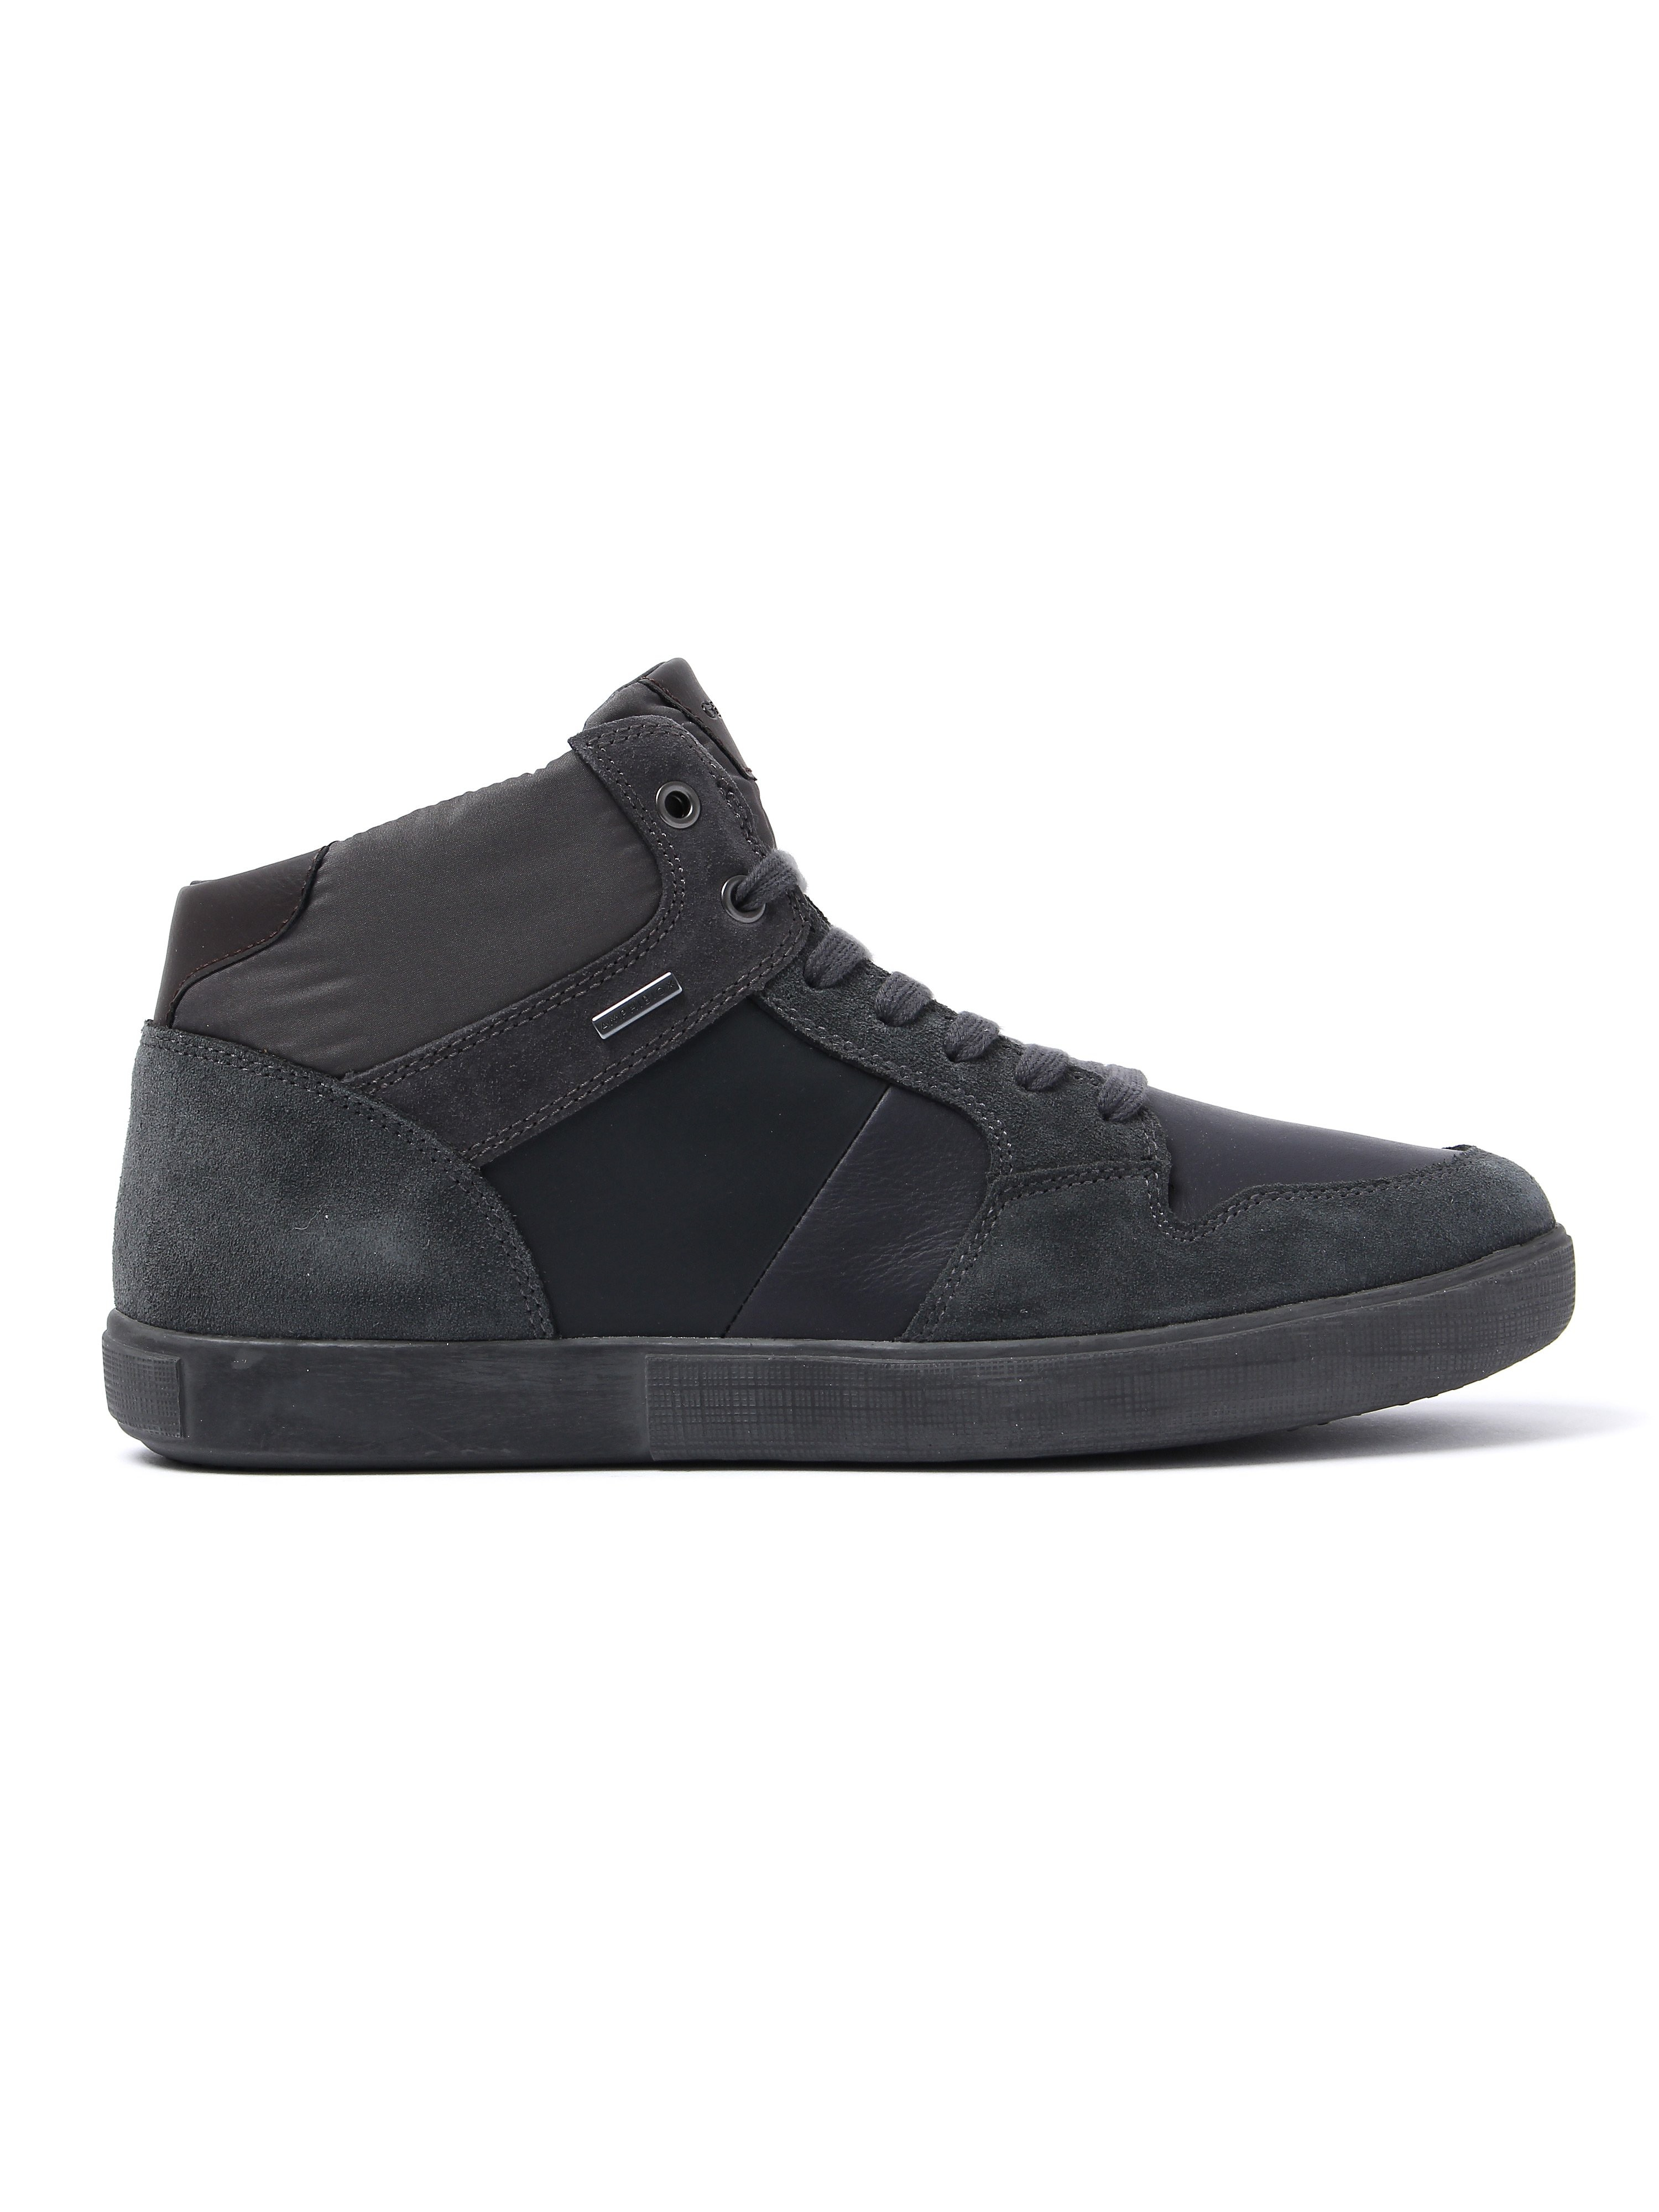 Geox Men's Taiki Abx Trainers - Anthracite